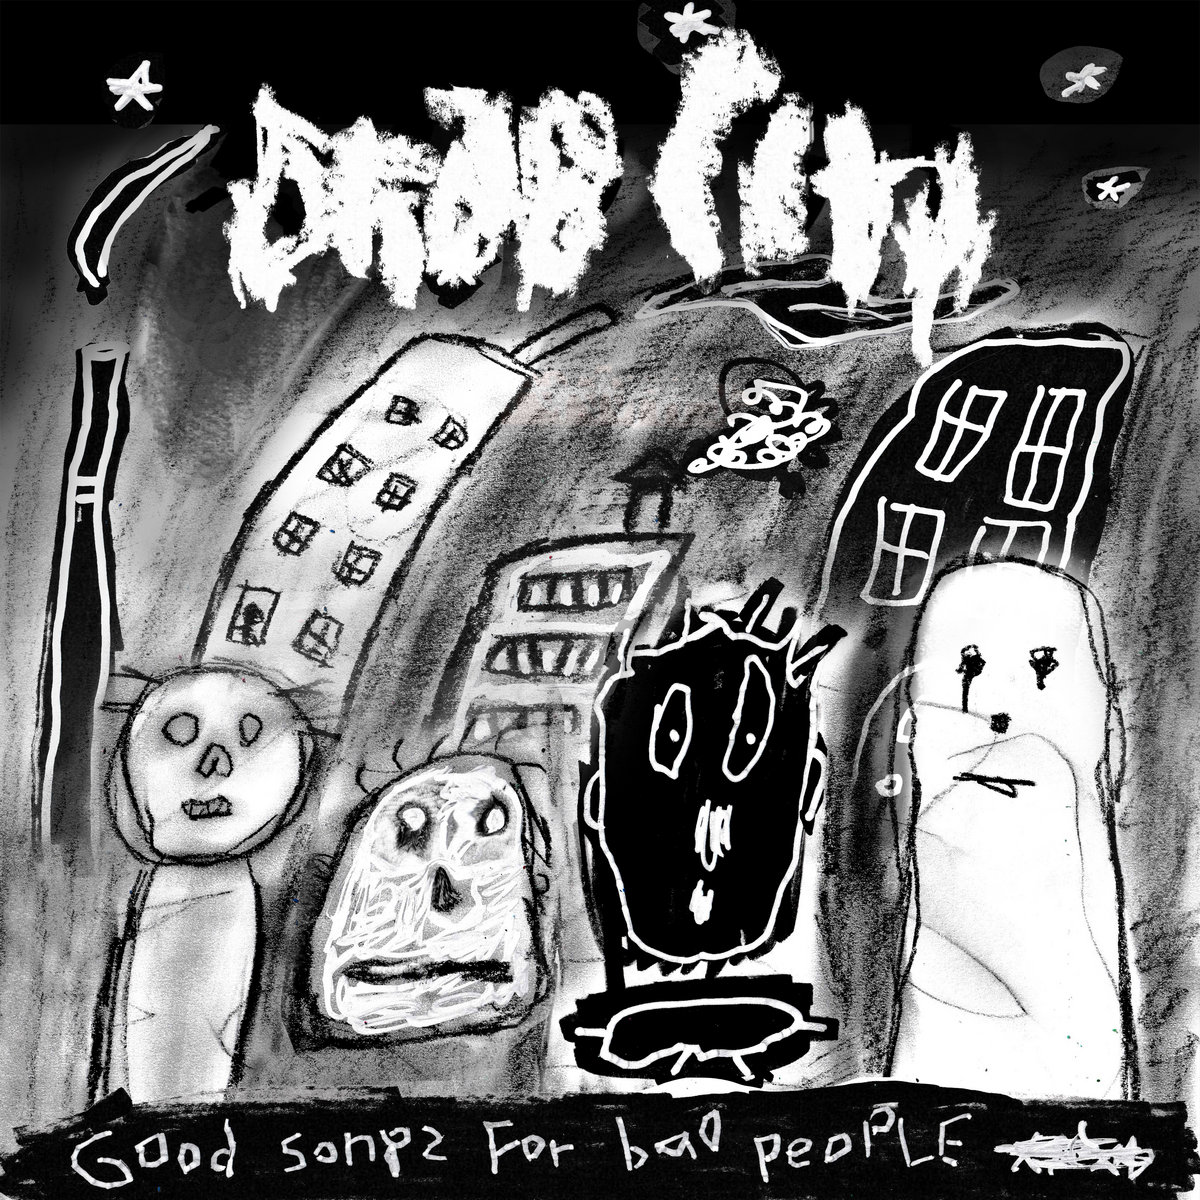 Good Songs For Bad People | Drab City